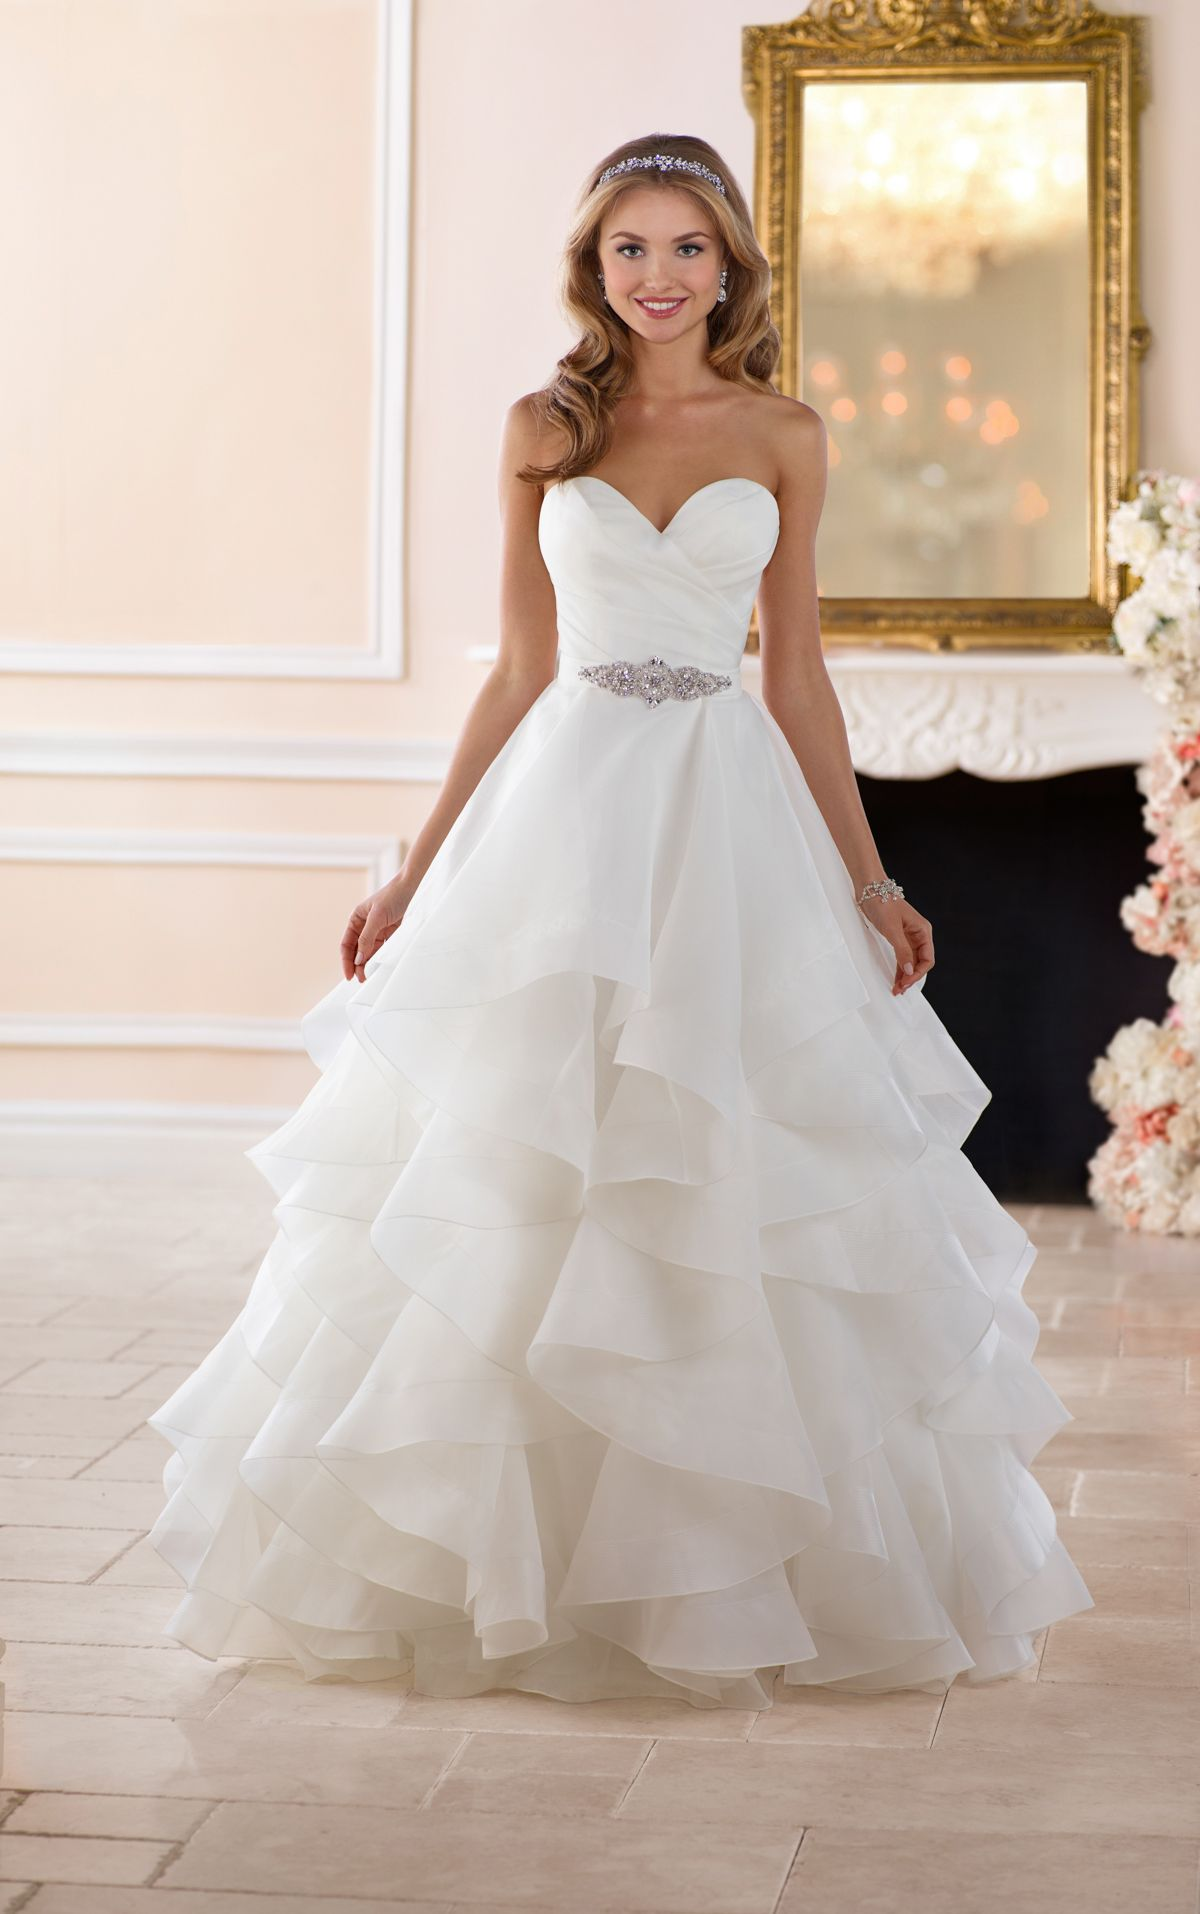 6db9883228 This dramatic layered skirt wedding dress from Stella York is truly a sight  to behold. This classic ball gown made of Royal organza has a voluminous  skirt ...